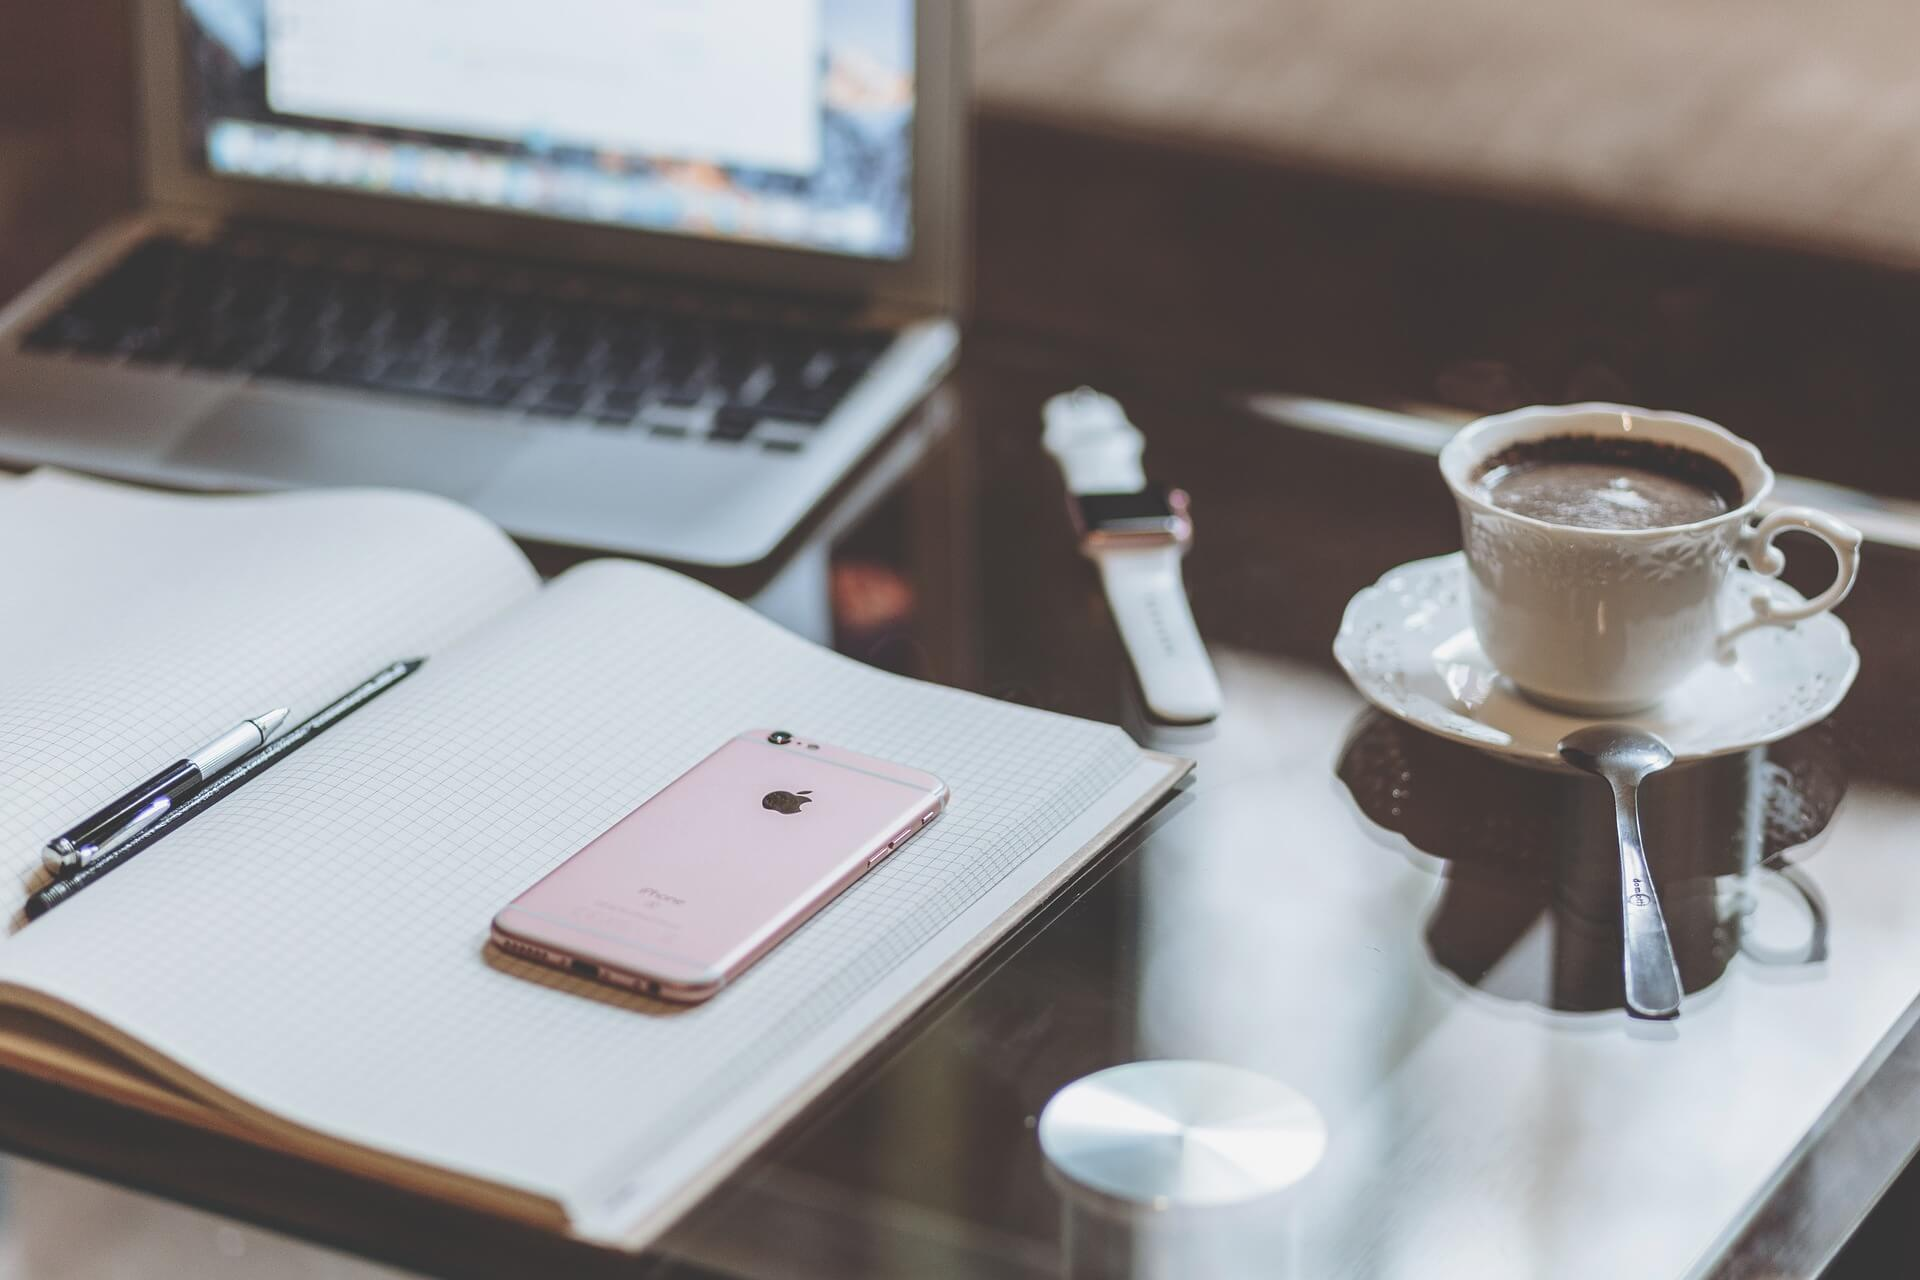 apple-hollywood-tv-serien